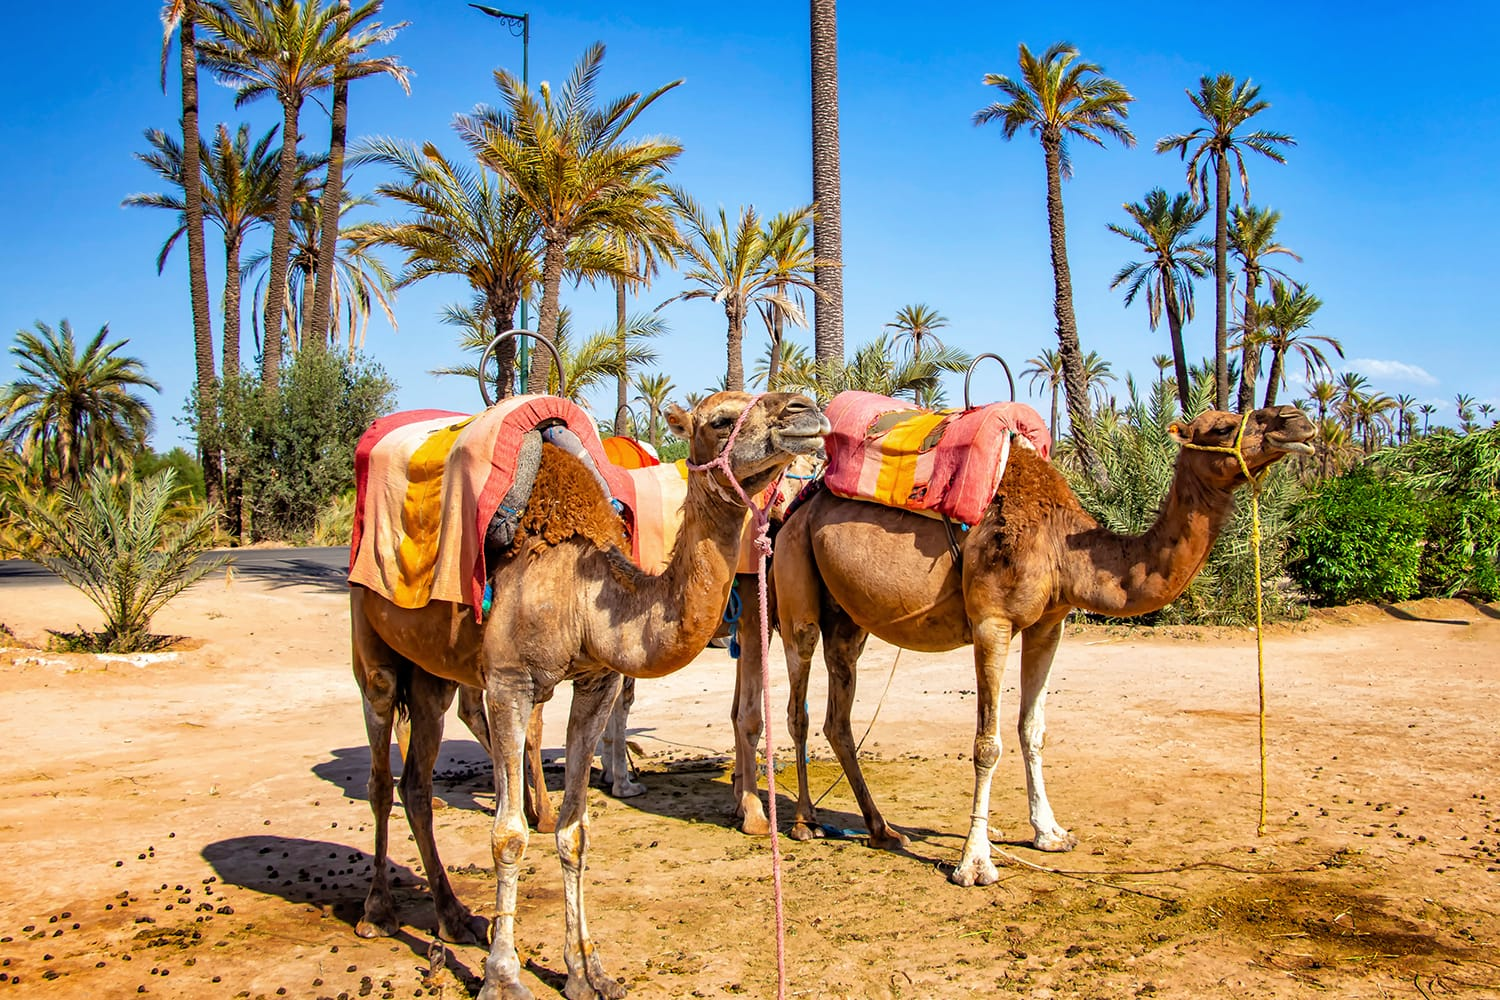 Camels with typical Berber saddles in a Palmeraie near Marrakesh, Morocco